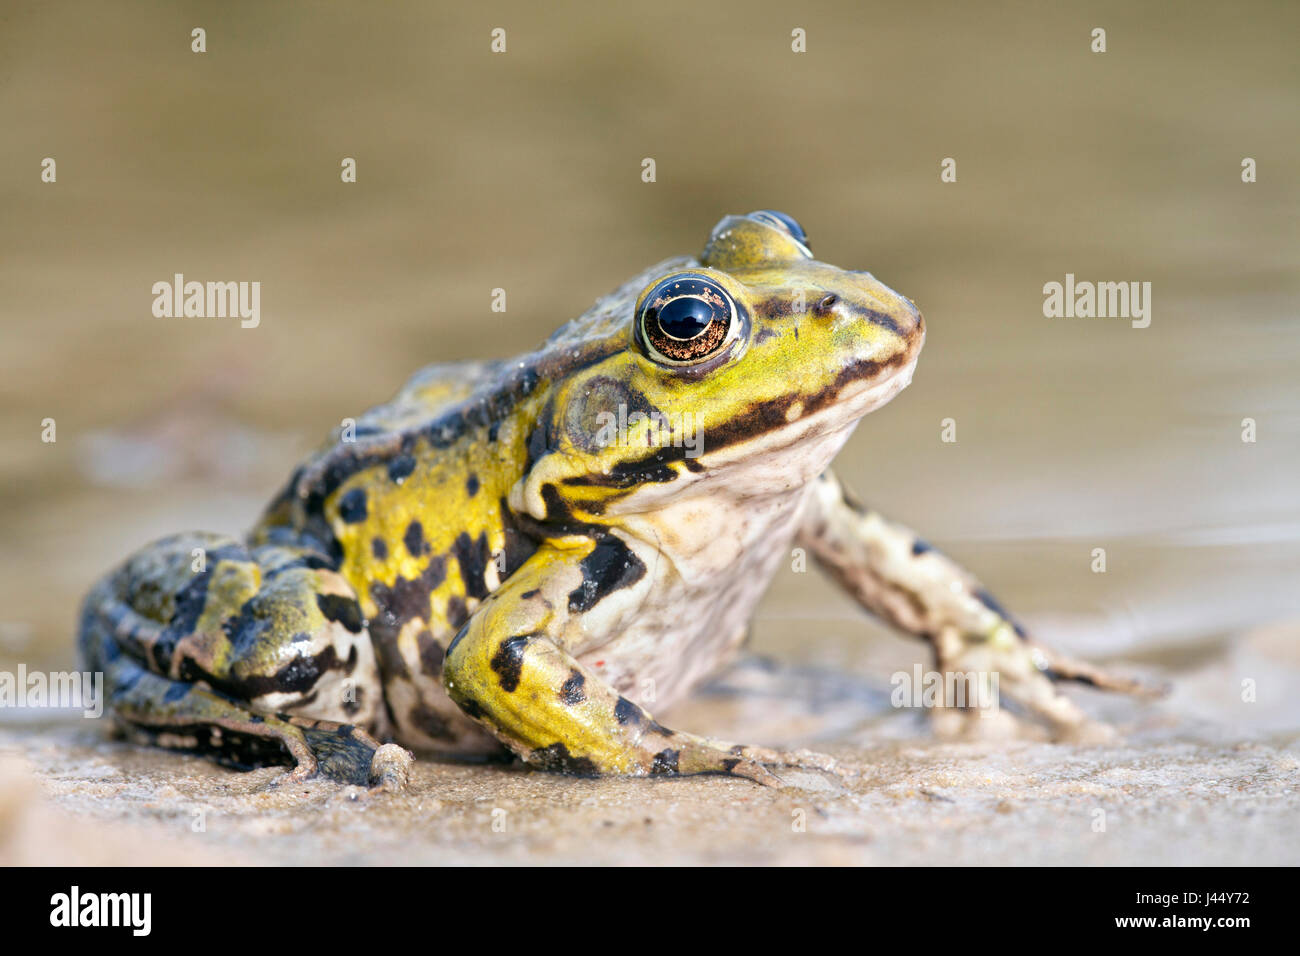 photo of a edible frog on the shore - Stock Image